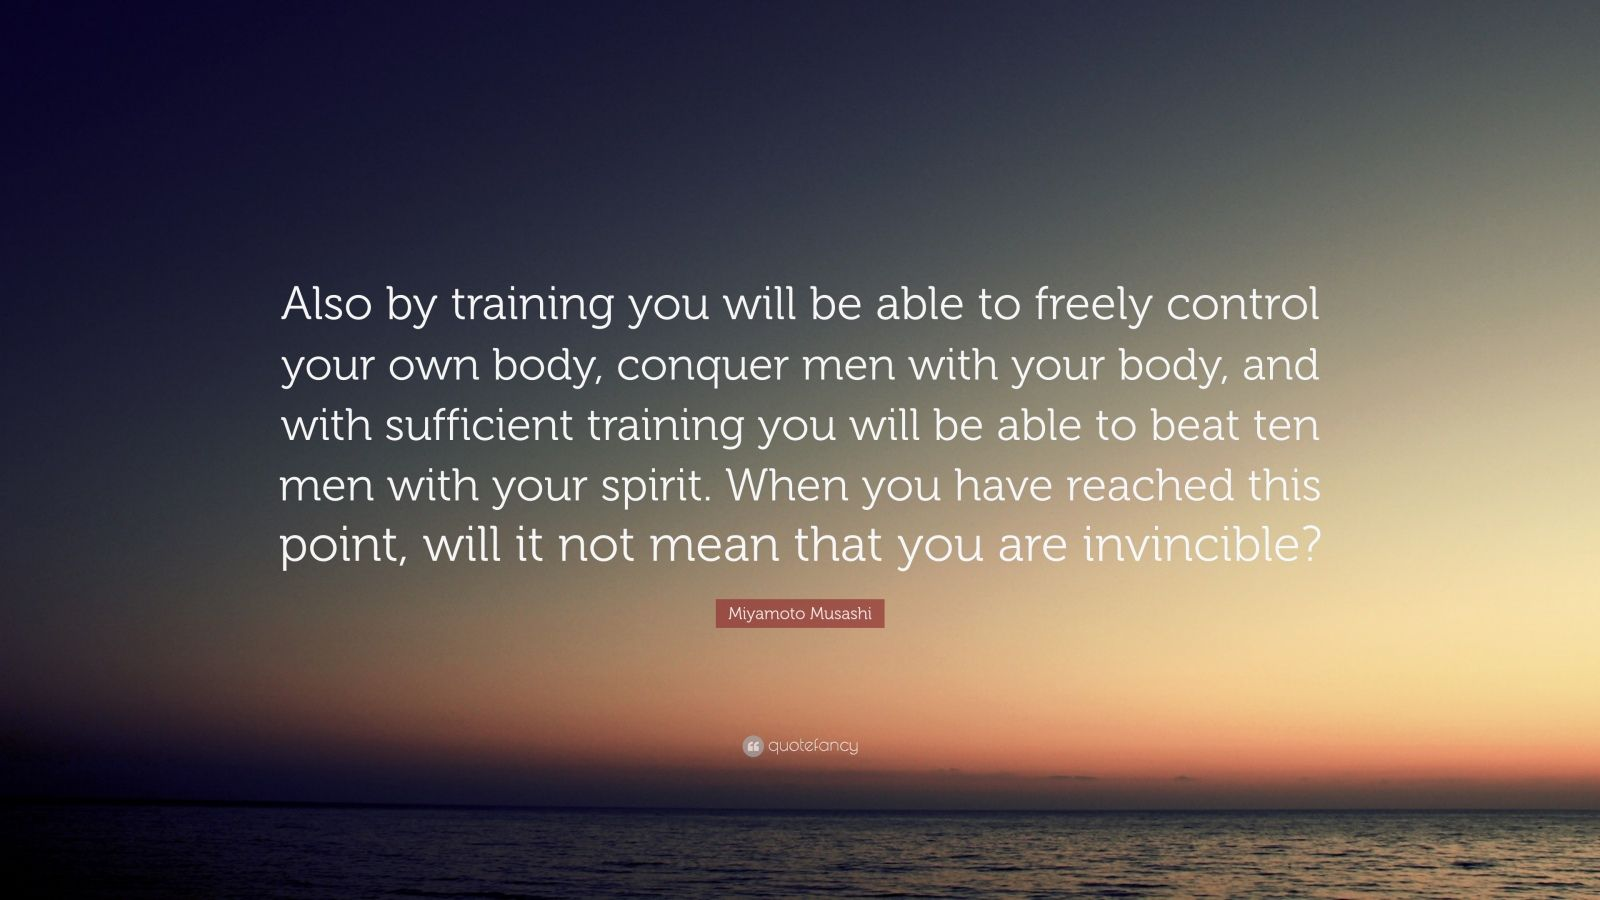 "Miyamoto Musashi Quote: ""Also by training you will be able to freely control your own body, conquer men with your body, and with sufficient training you will be able to beat ten men with your spirit. When you have reached this point, will it not mean that you are invincible?"""